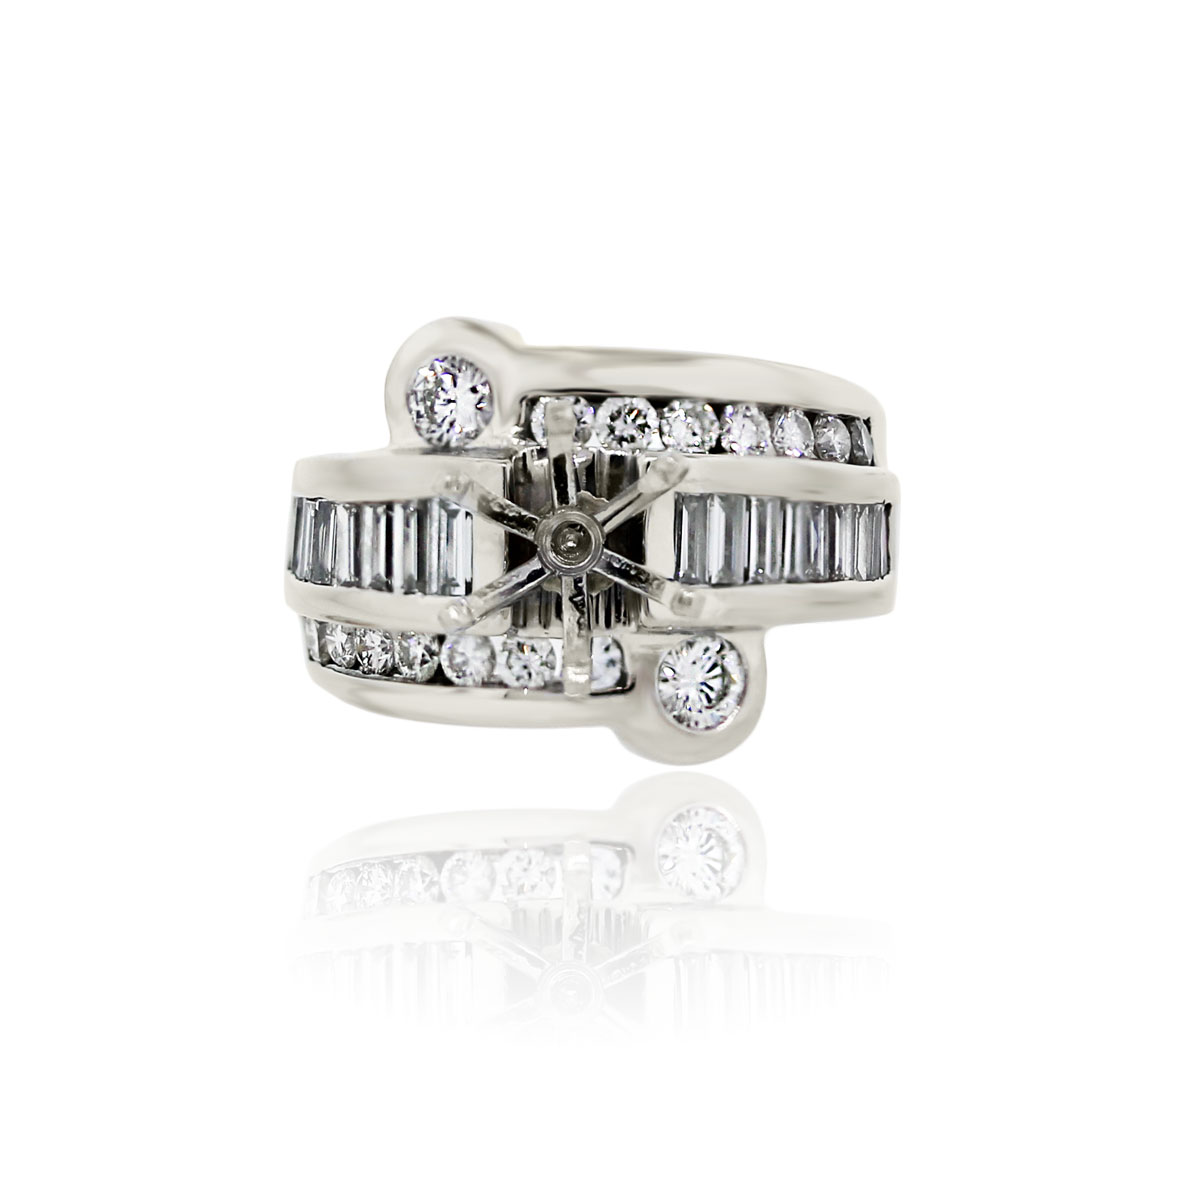 You are viewing this 18k White Gold Round Brilliant Cut Baguette Diamond Mounting!